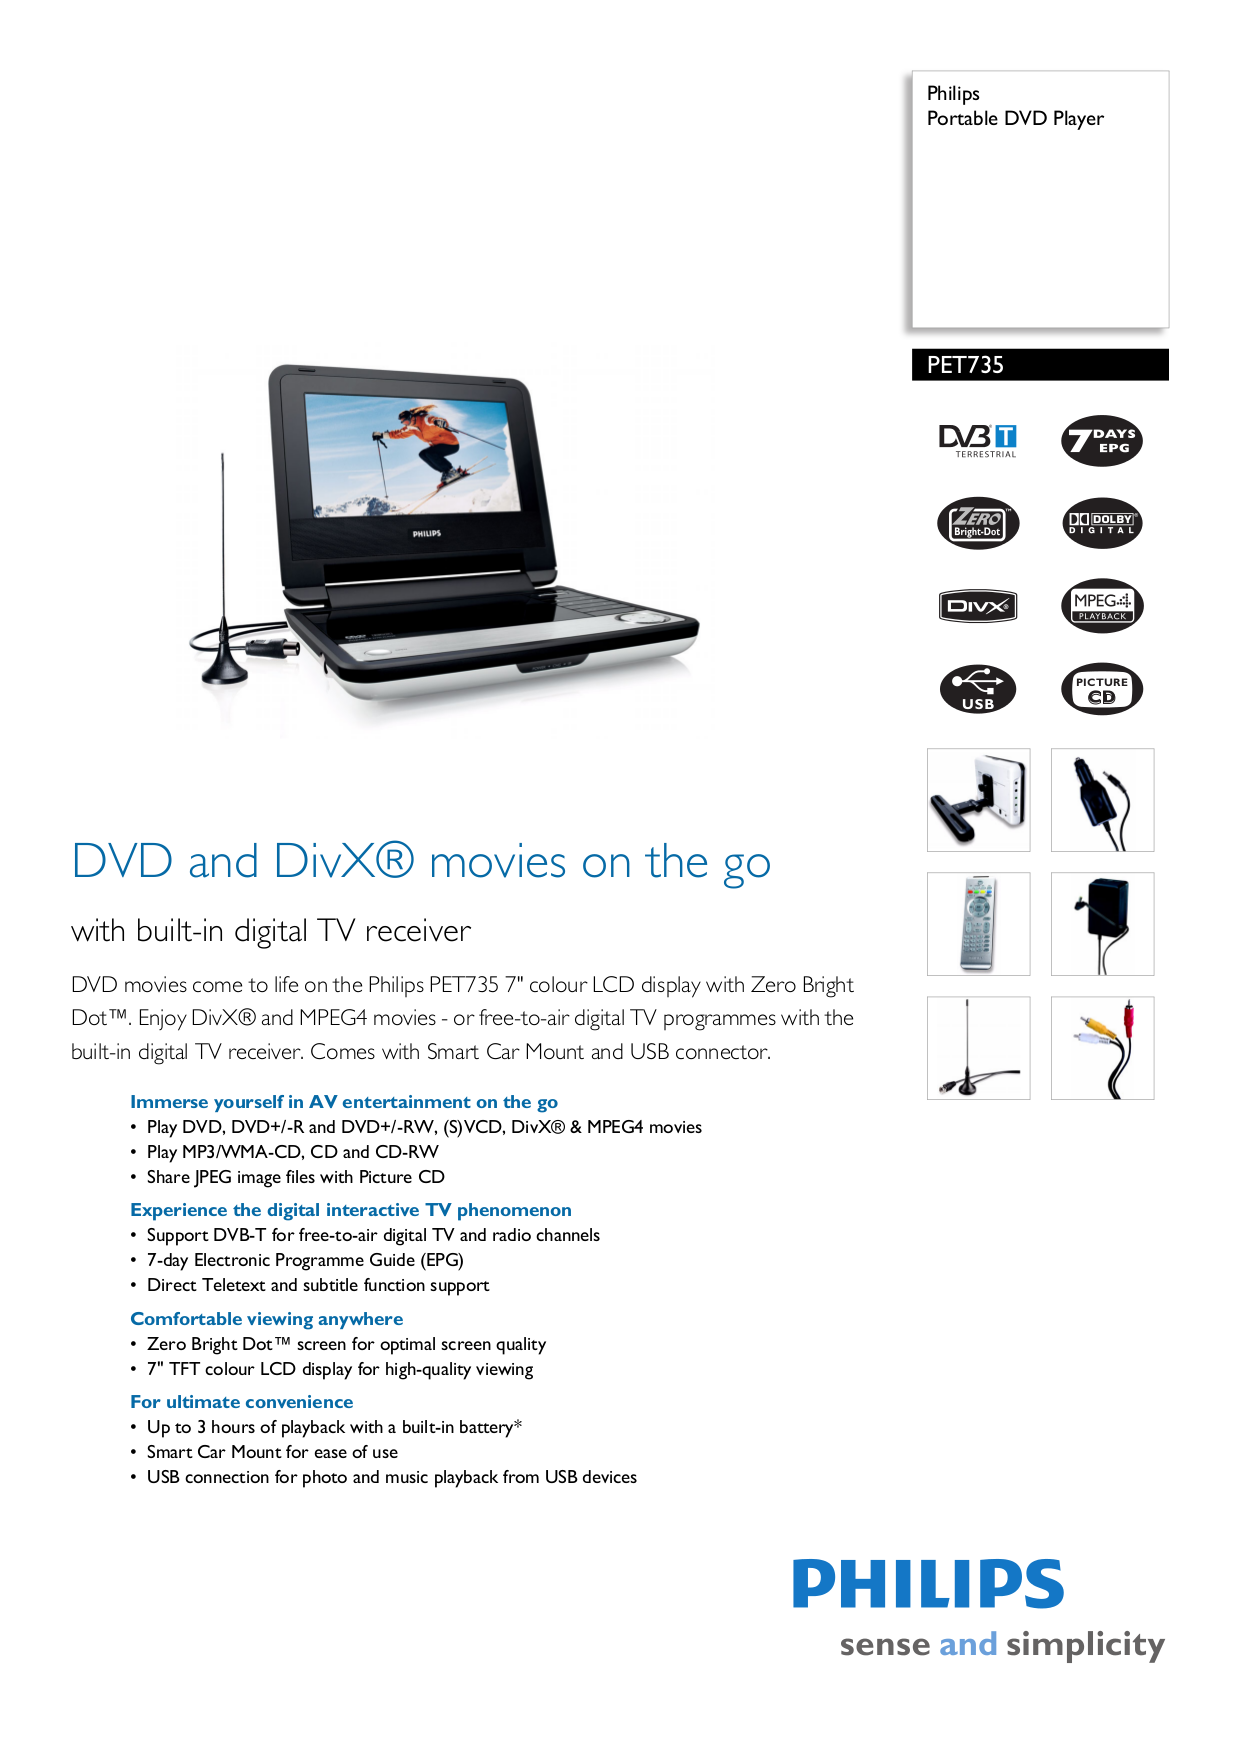 Pdf manual for philips portable dvd player pet741.